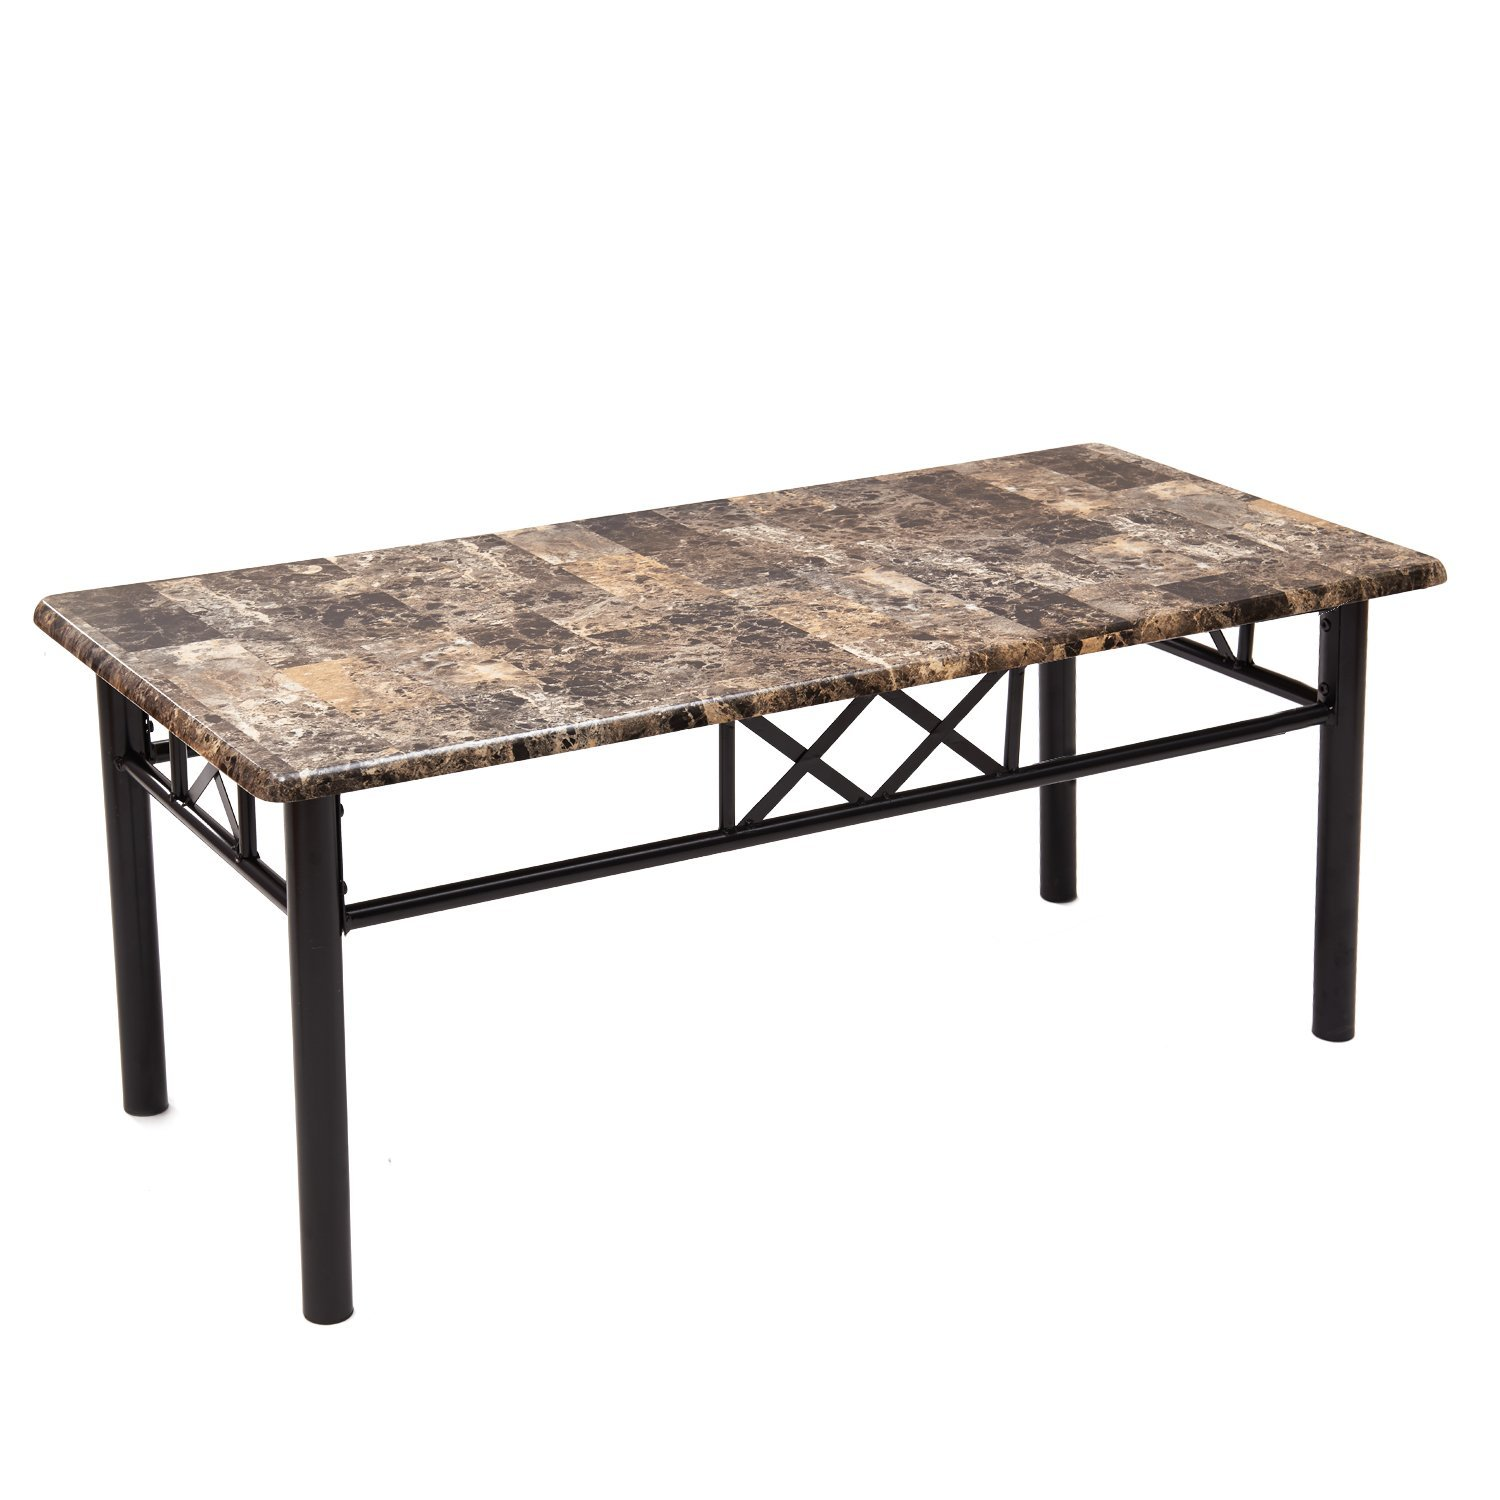 Cheap Oval Coffee Table With Metal Frame find Oval Coffee Table